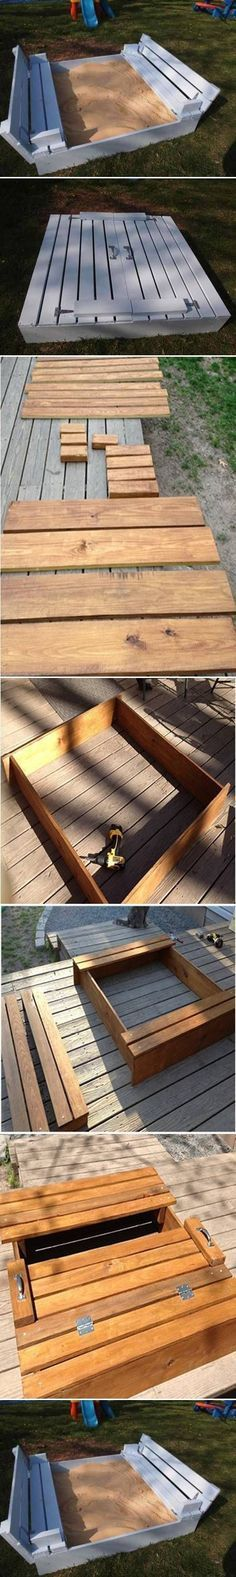 DIY Pallet Projects. Sandbox for kids to play in! Keeps sand covered and contained. #Pallet #DIY #Outdoor